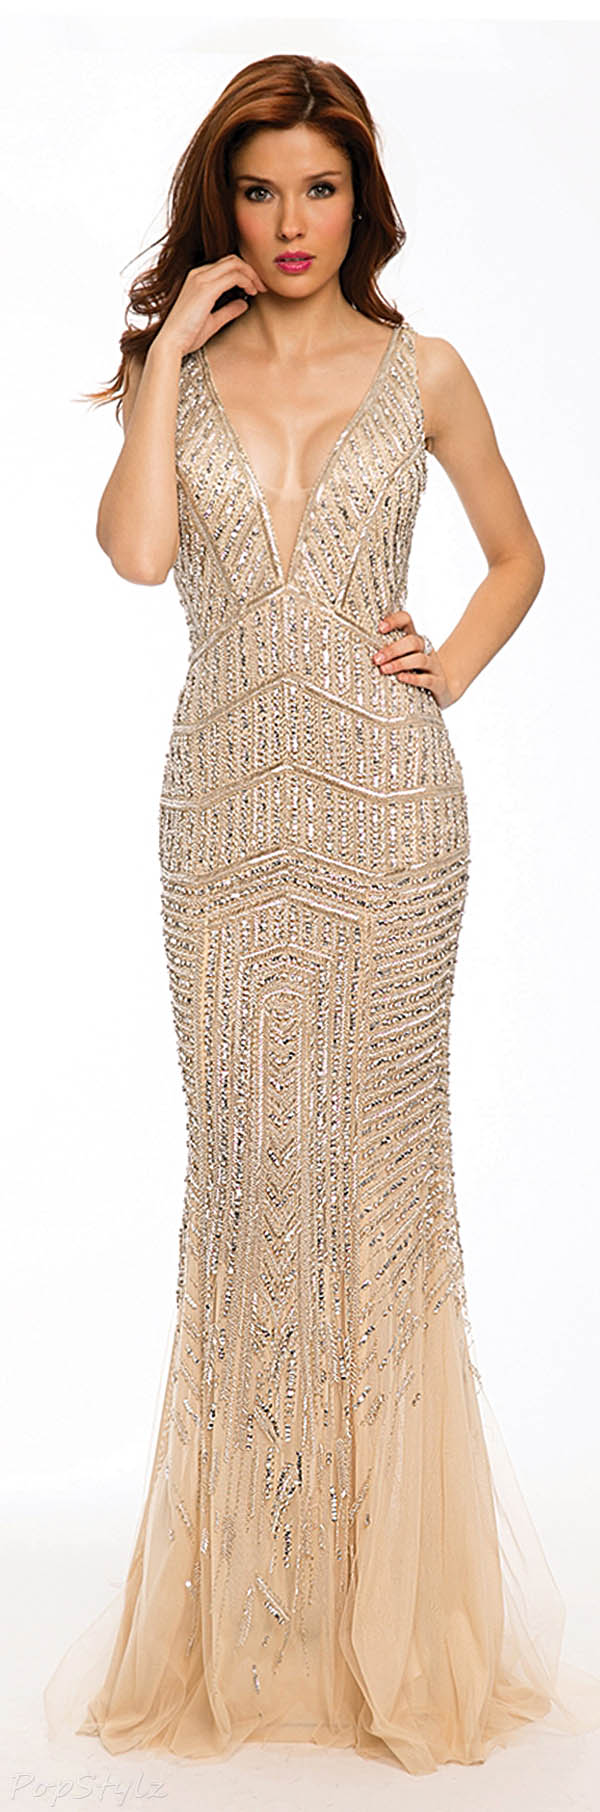 Jovani 20736 Long Sparkling 2015 Evening Gown